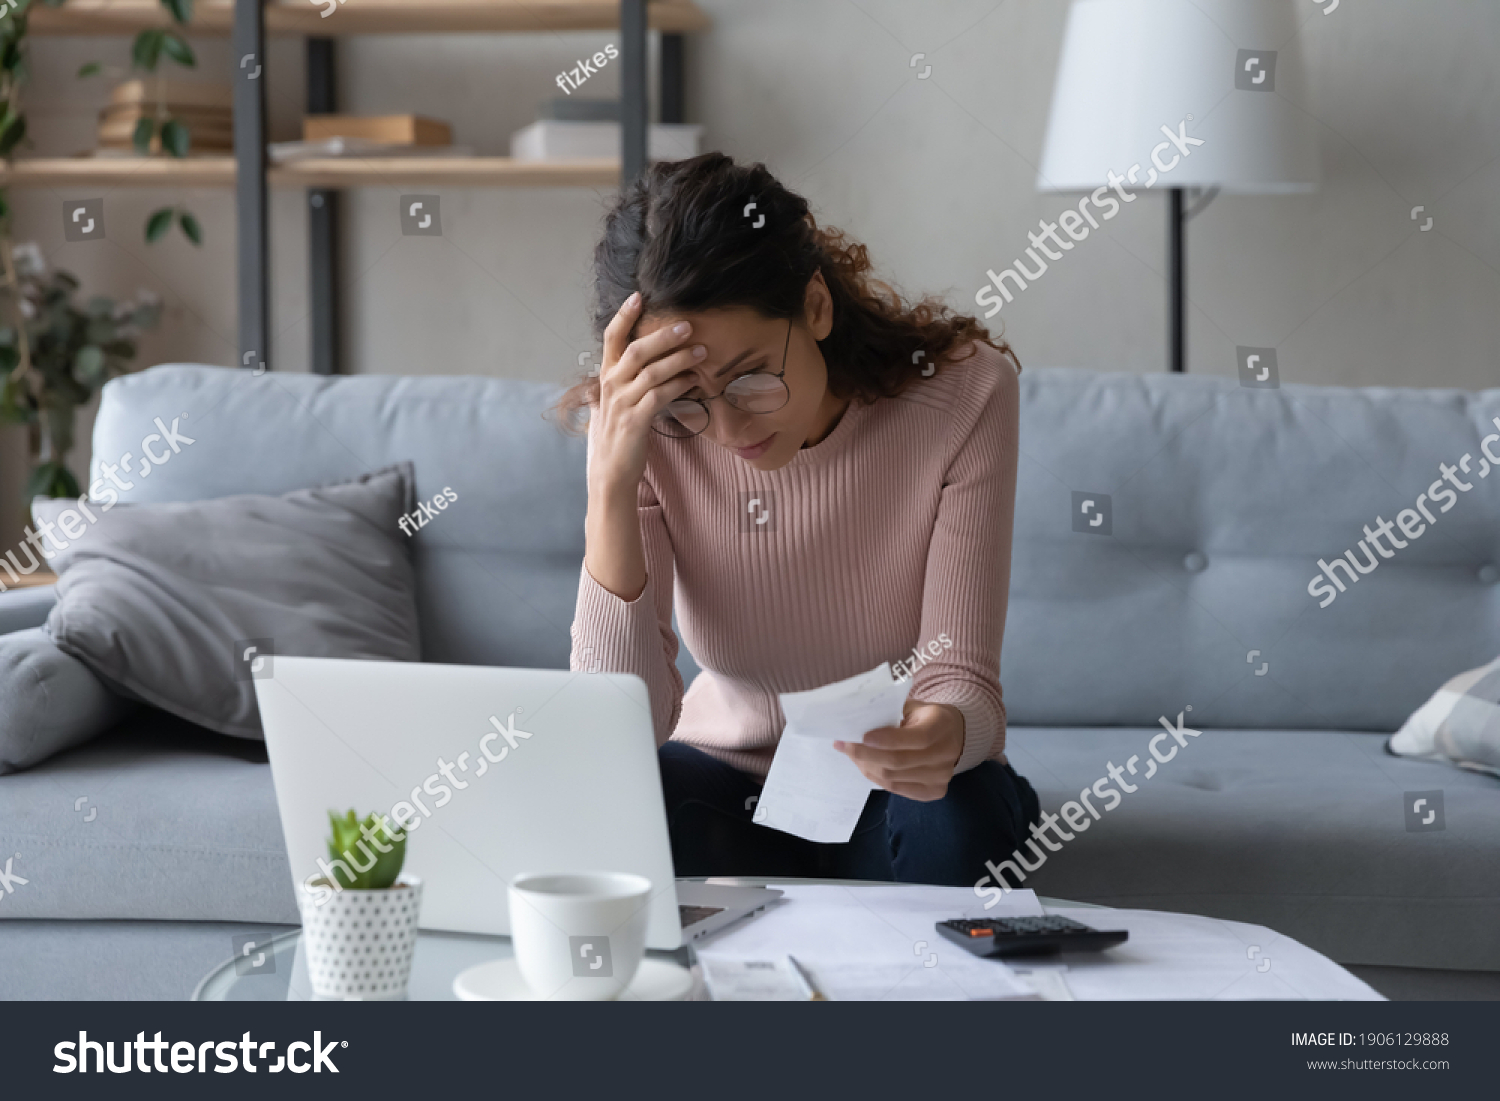 Unhappy young woman in glasses feeling stressed calculating monthly expenses at home, facing financial problems or lack of money for utility household or rental payments, bankruptcy concept. #1906129888